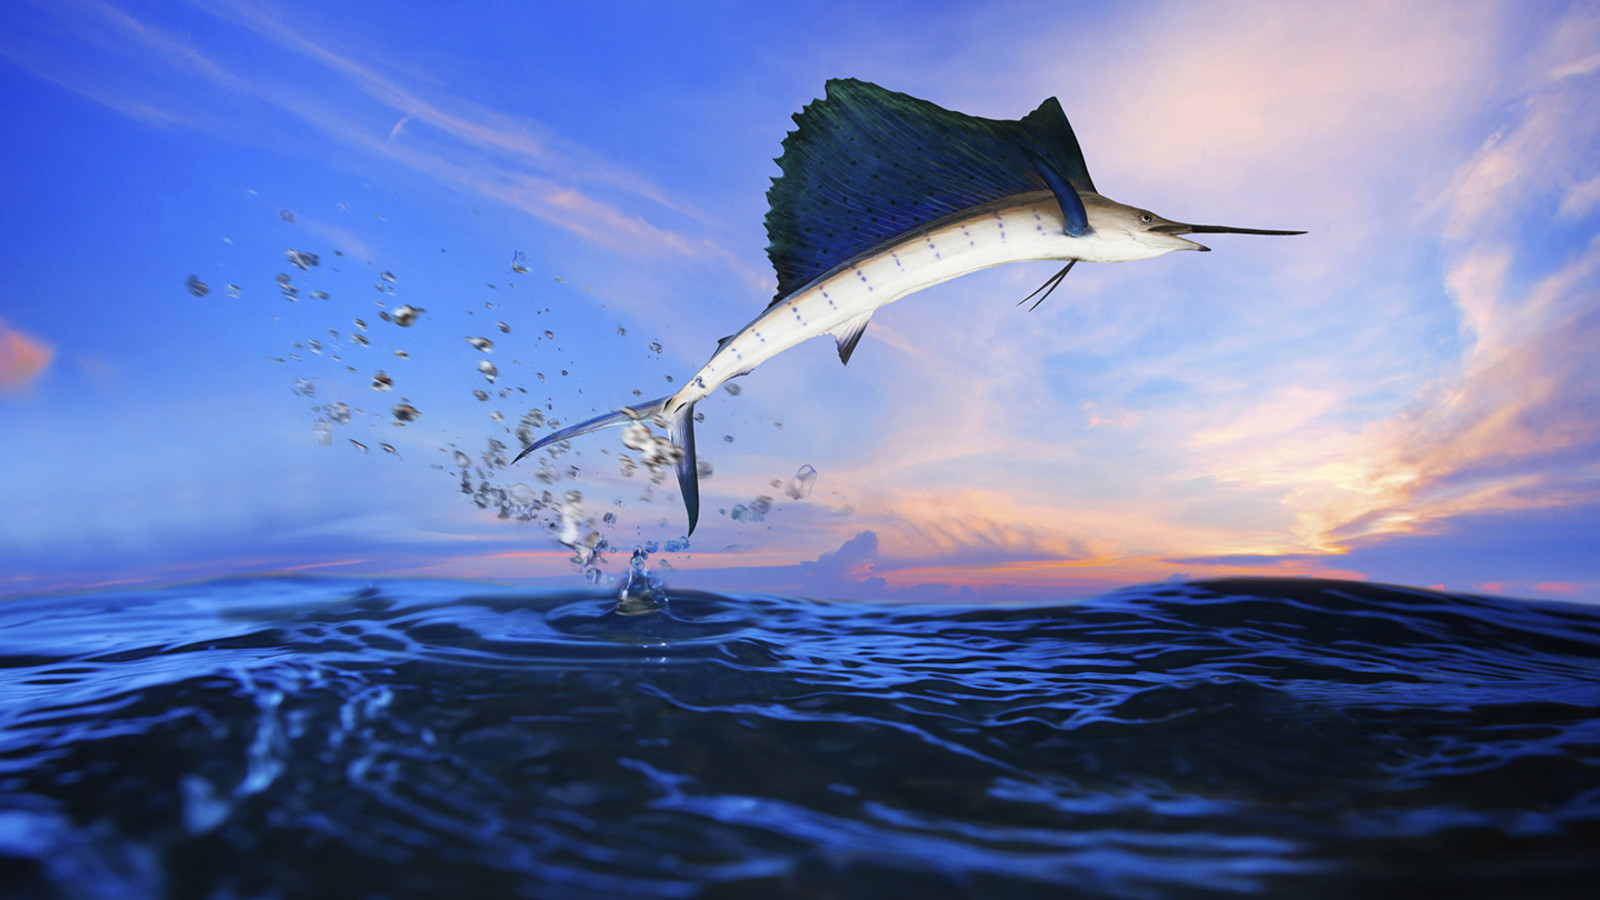 The fastest fish is the sailfish.